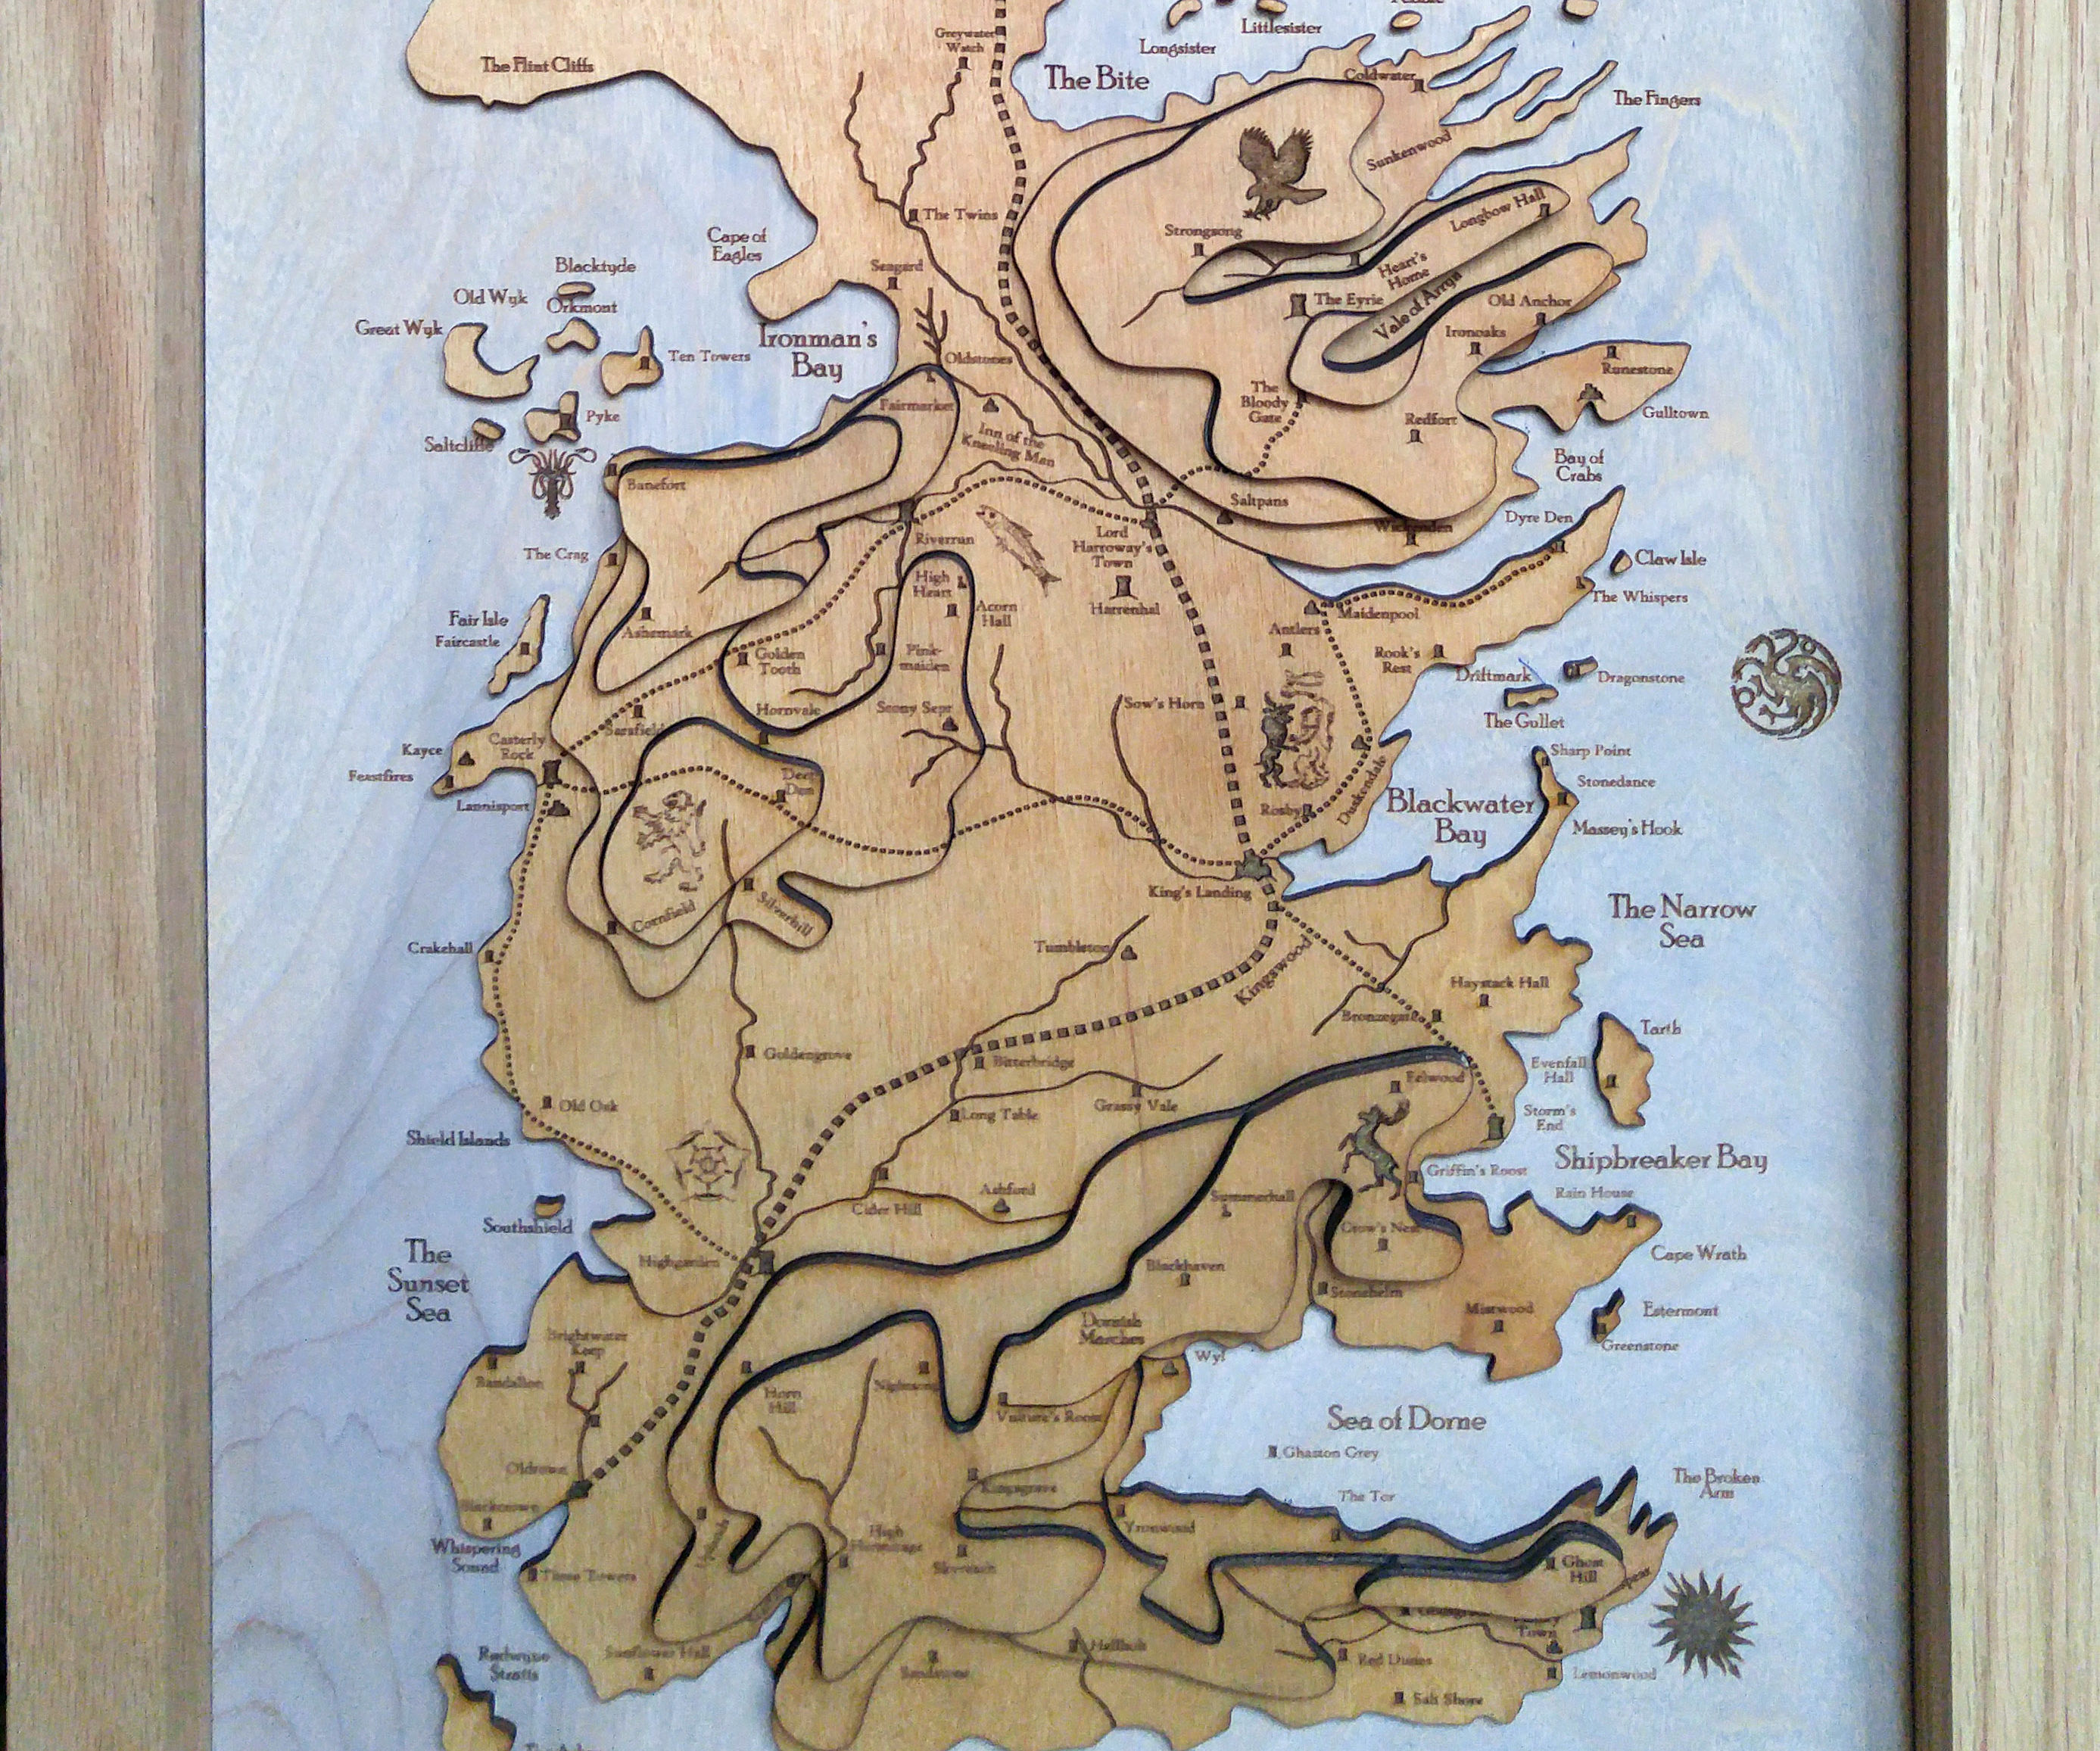 I Made a 3D Topographic Map of Westeros From Game of Thrones.